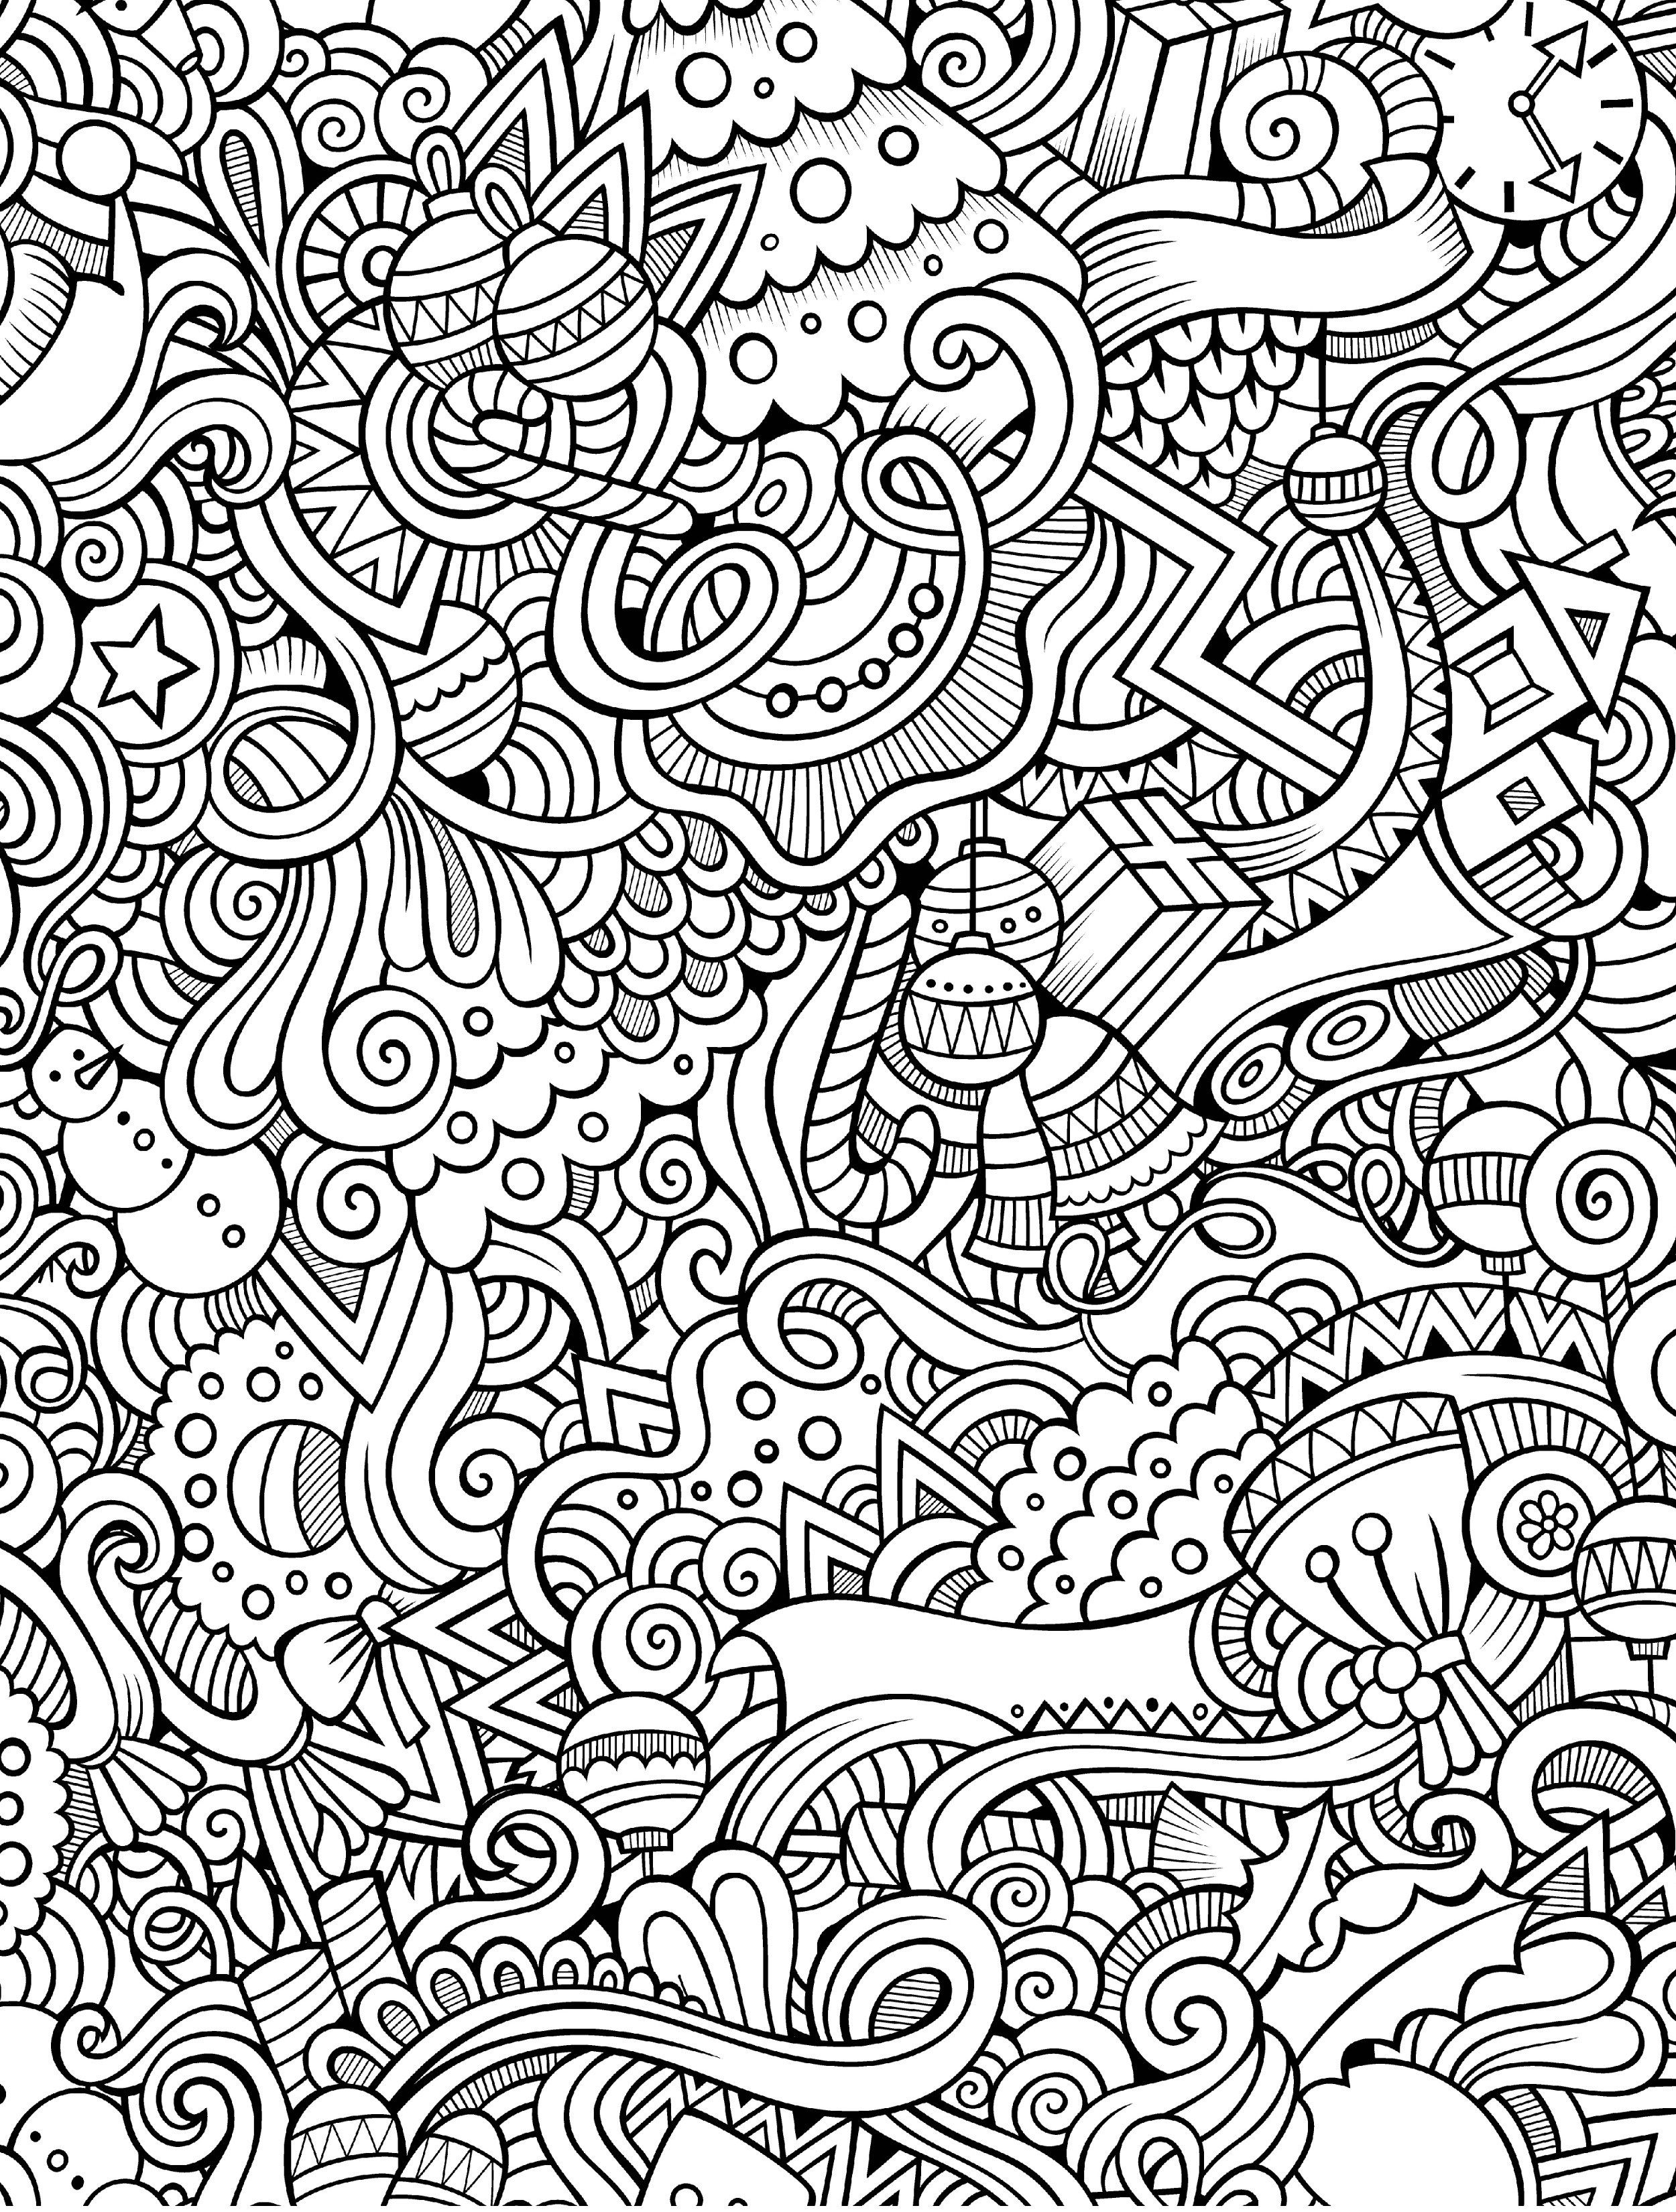 Christmas Coloring Pages Printable For Adults With 10 Free Holiday Adult